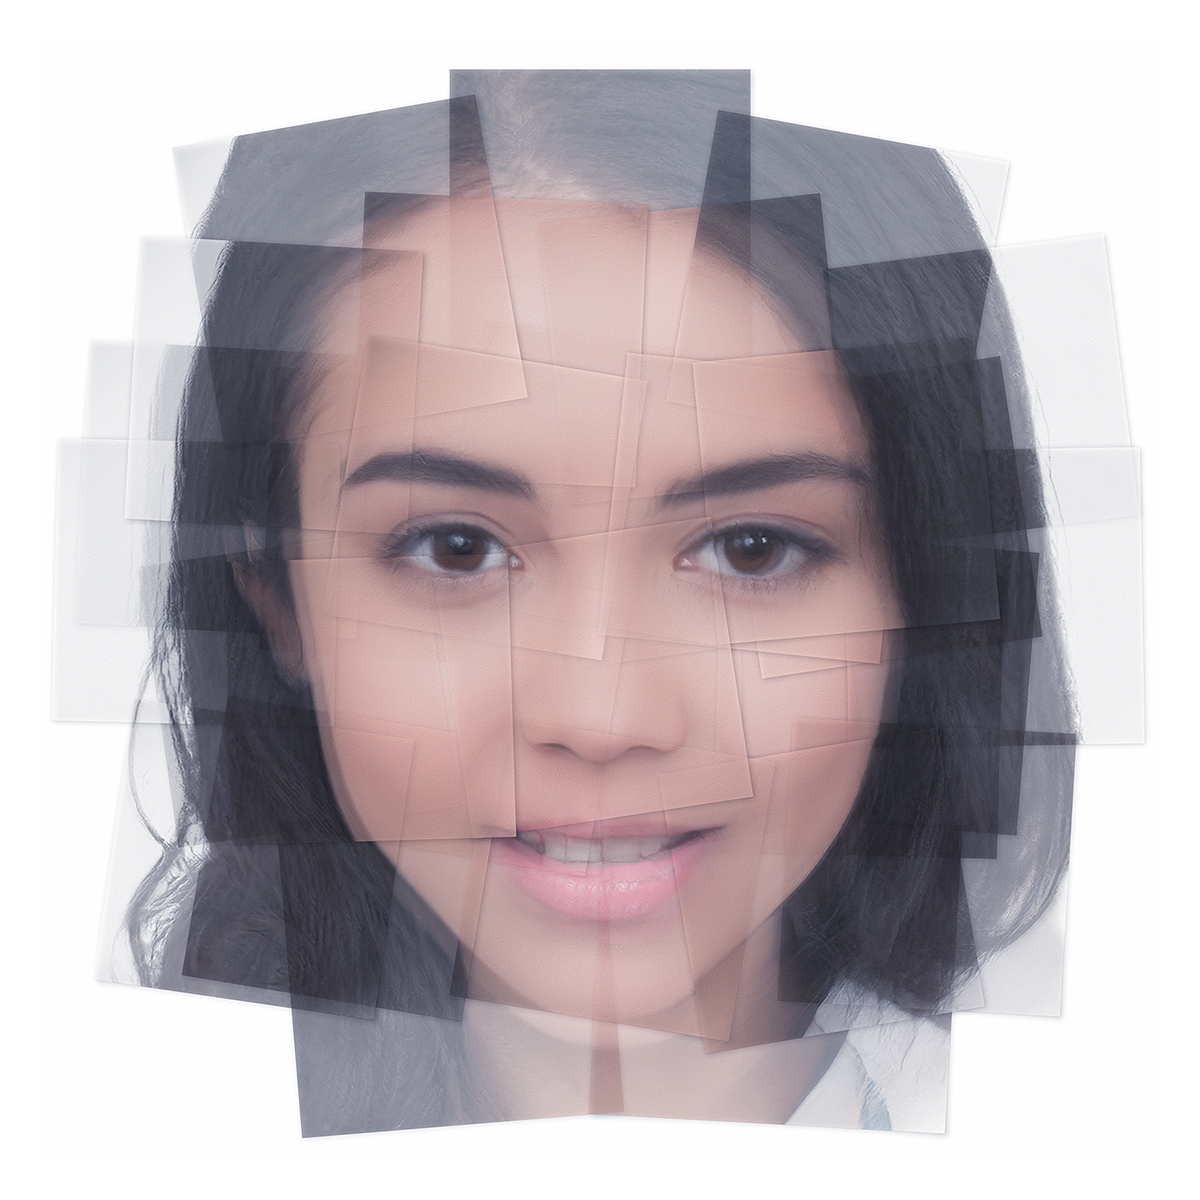 Generated Faces by Artificial Intelligence Teens 005 1 - 2019 - Generated Faces by Artificial Intelligence. Teens. V1